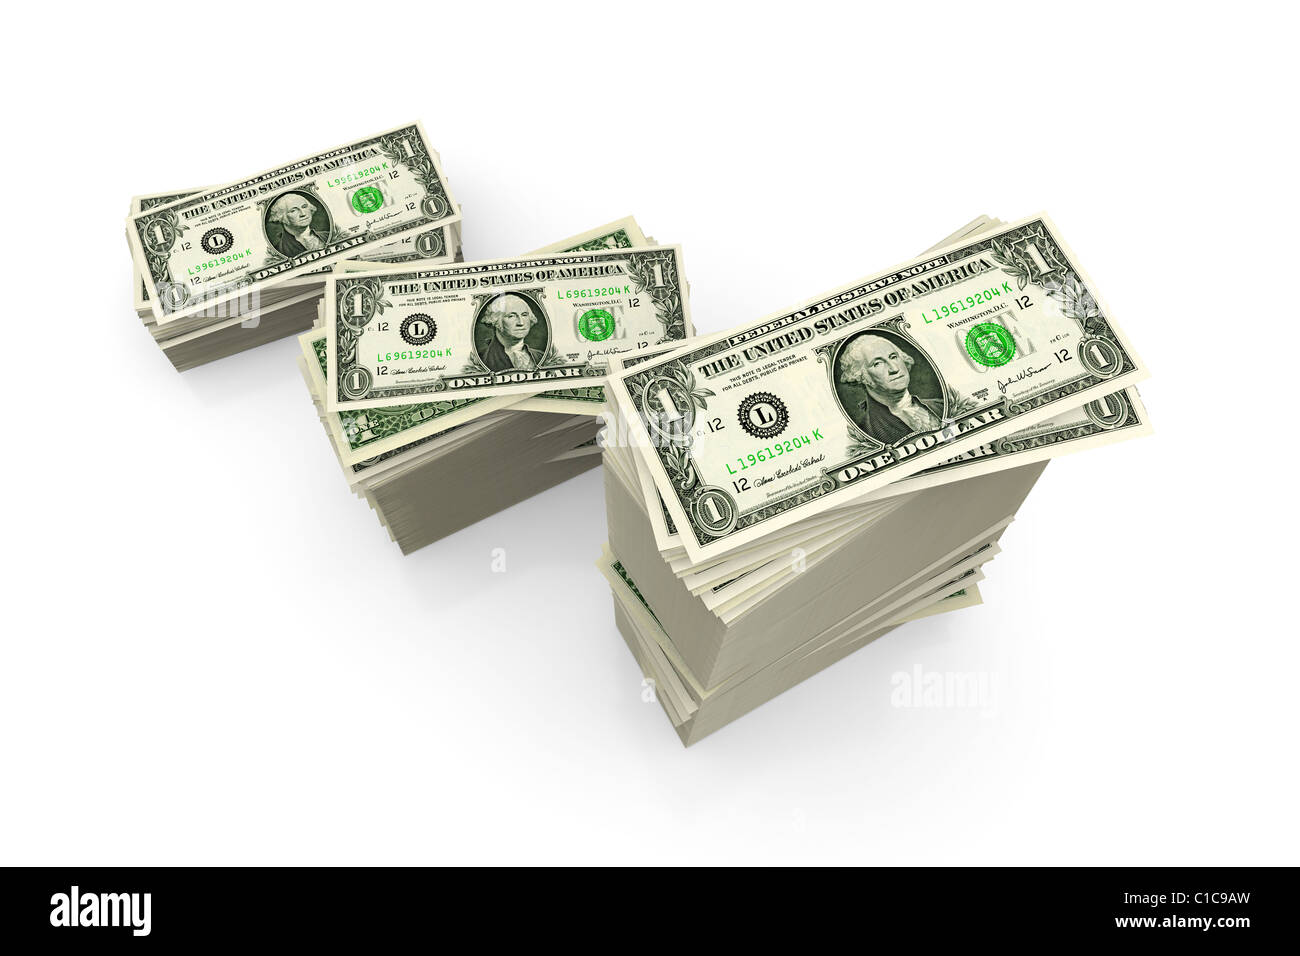 Dollar bills - piles of US currency on white - Stock Image